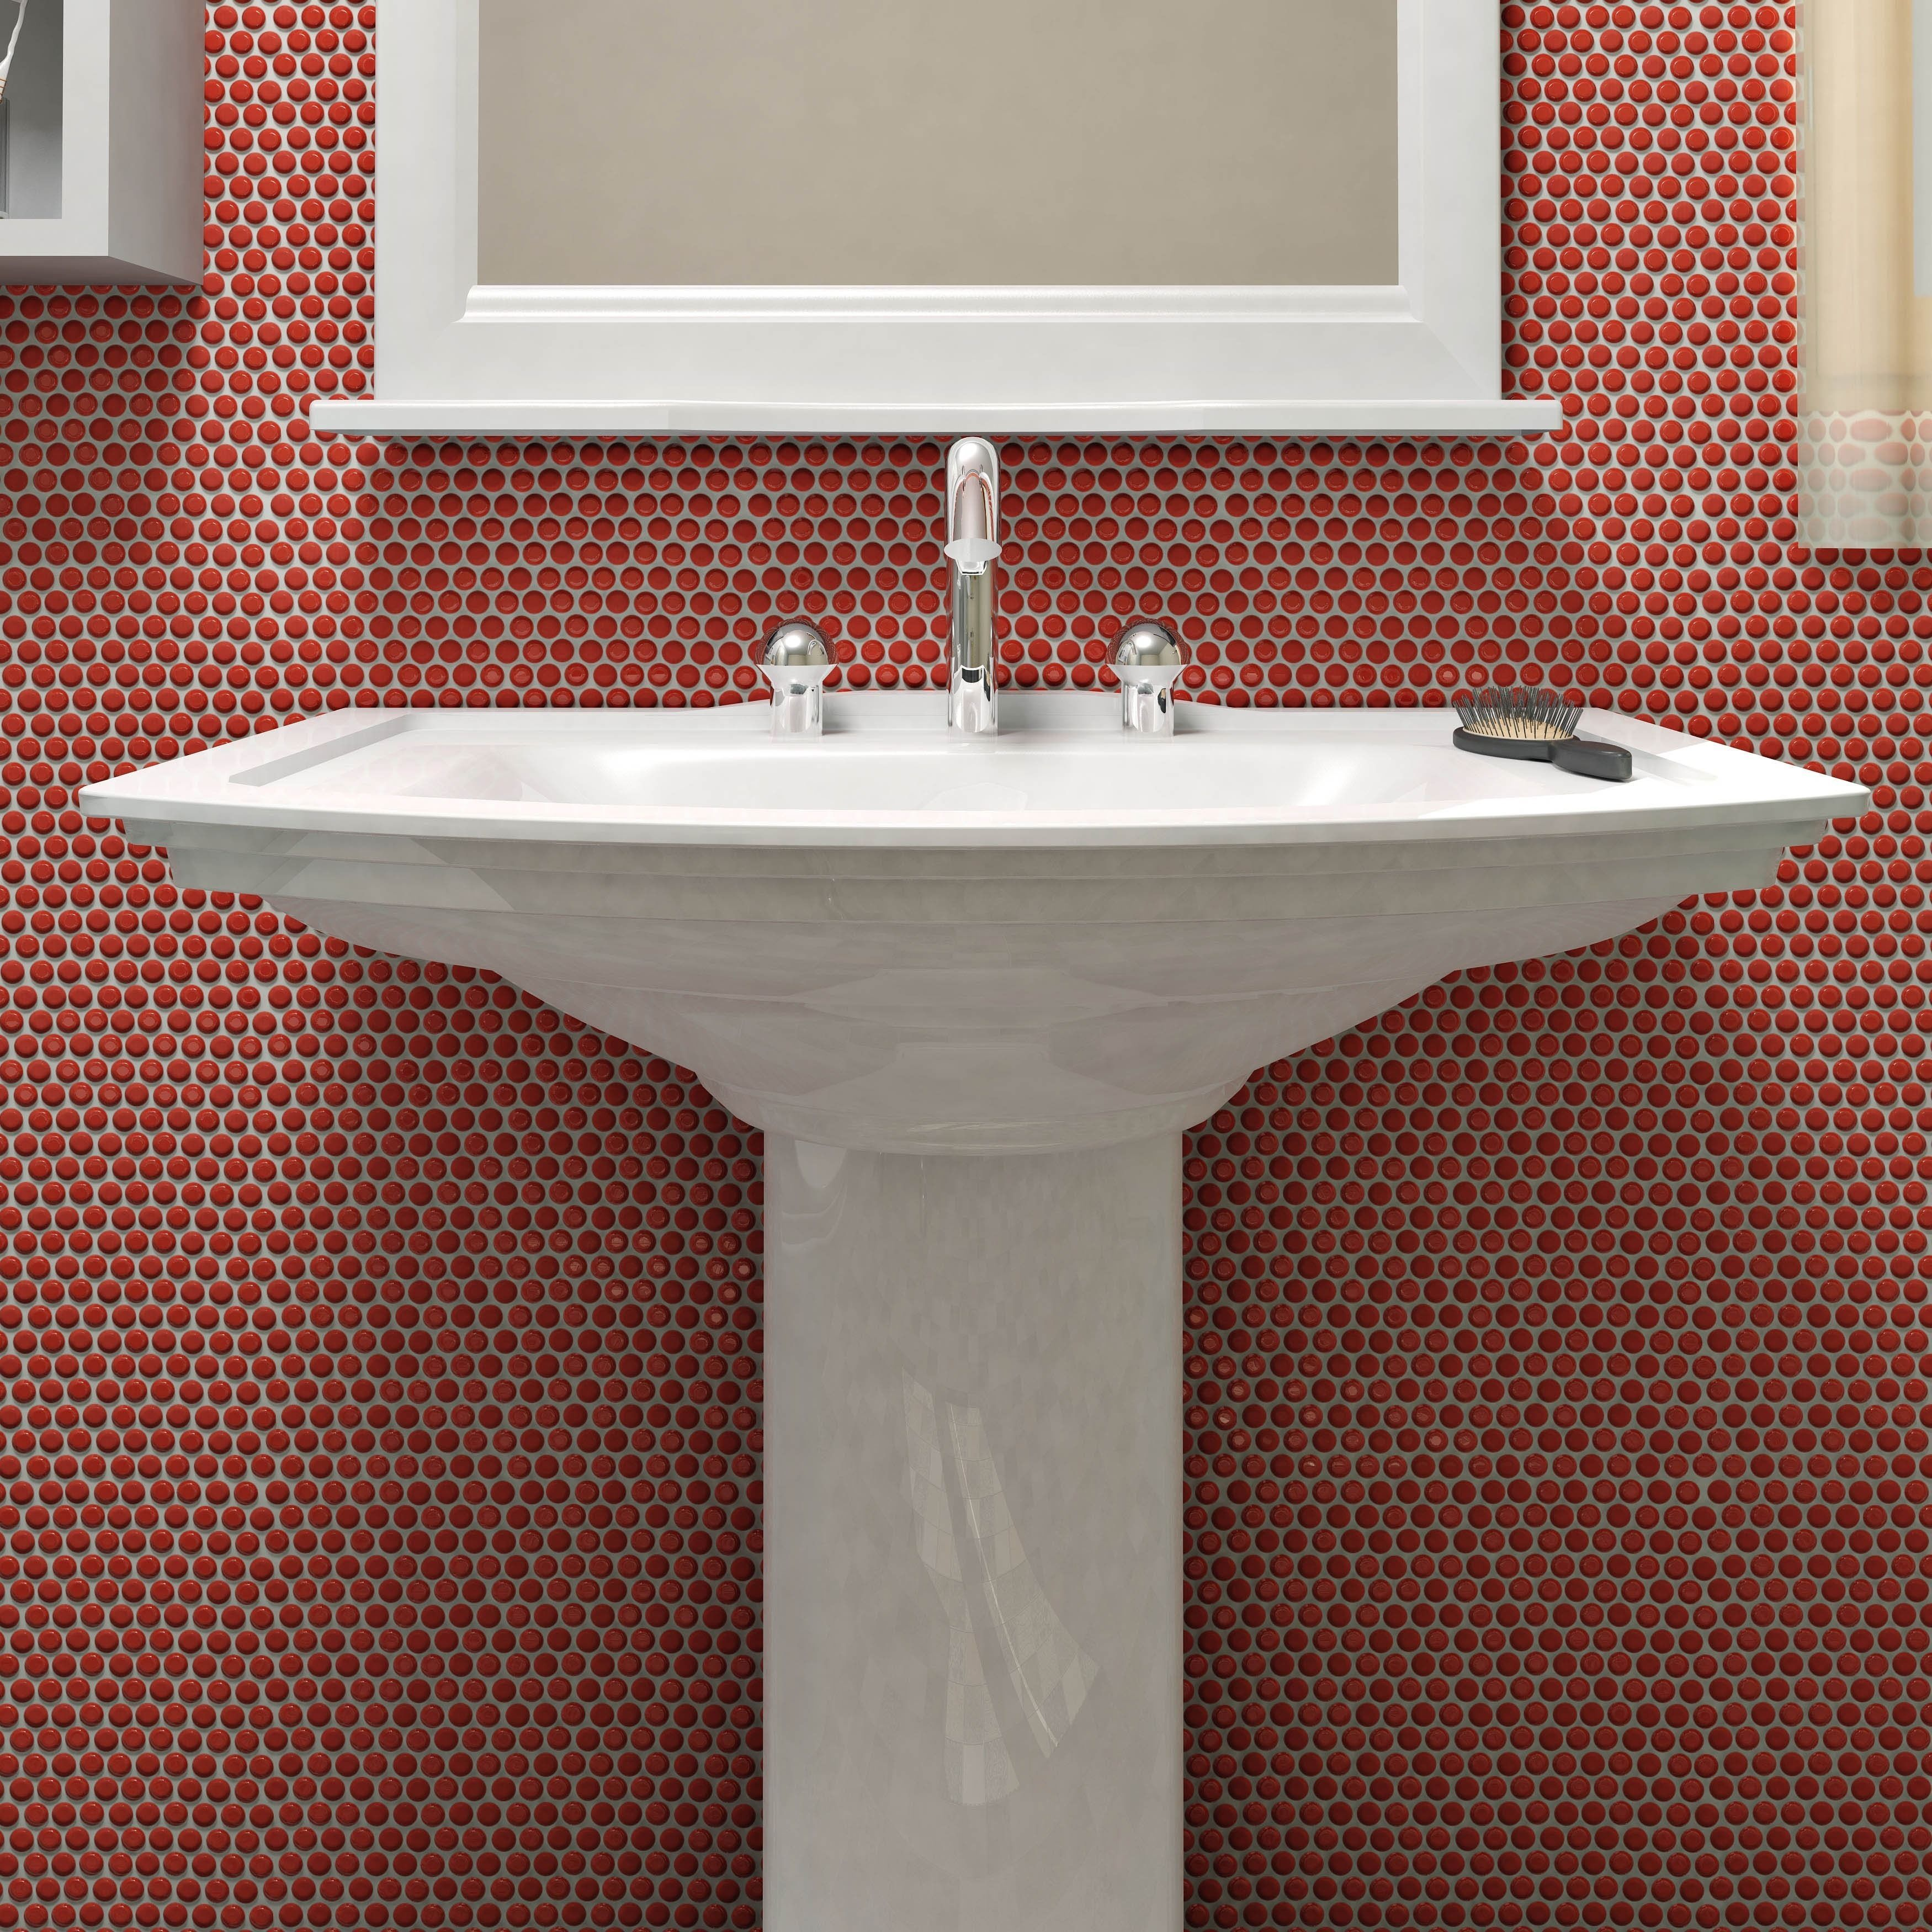 Somertile 1125 x 1175 inch andromeda penny round red porcelain somertile 1125 x 1175 inch andromeda penny round red porcelain mosaic wall tile pack of 10 by somertile dailygadgetfo Images